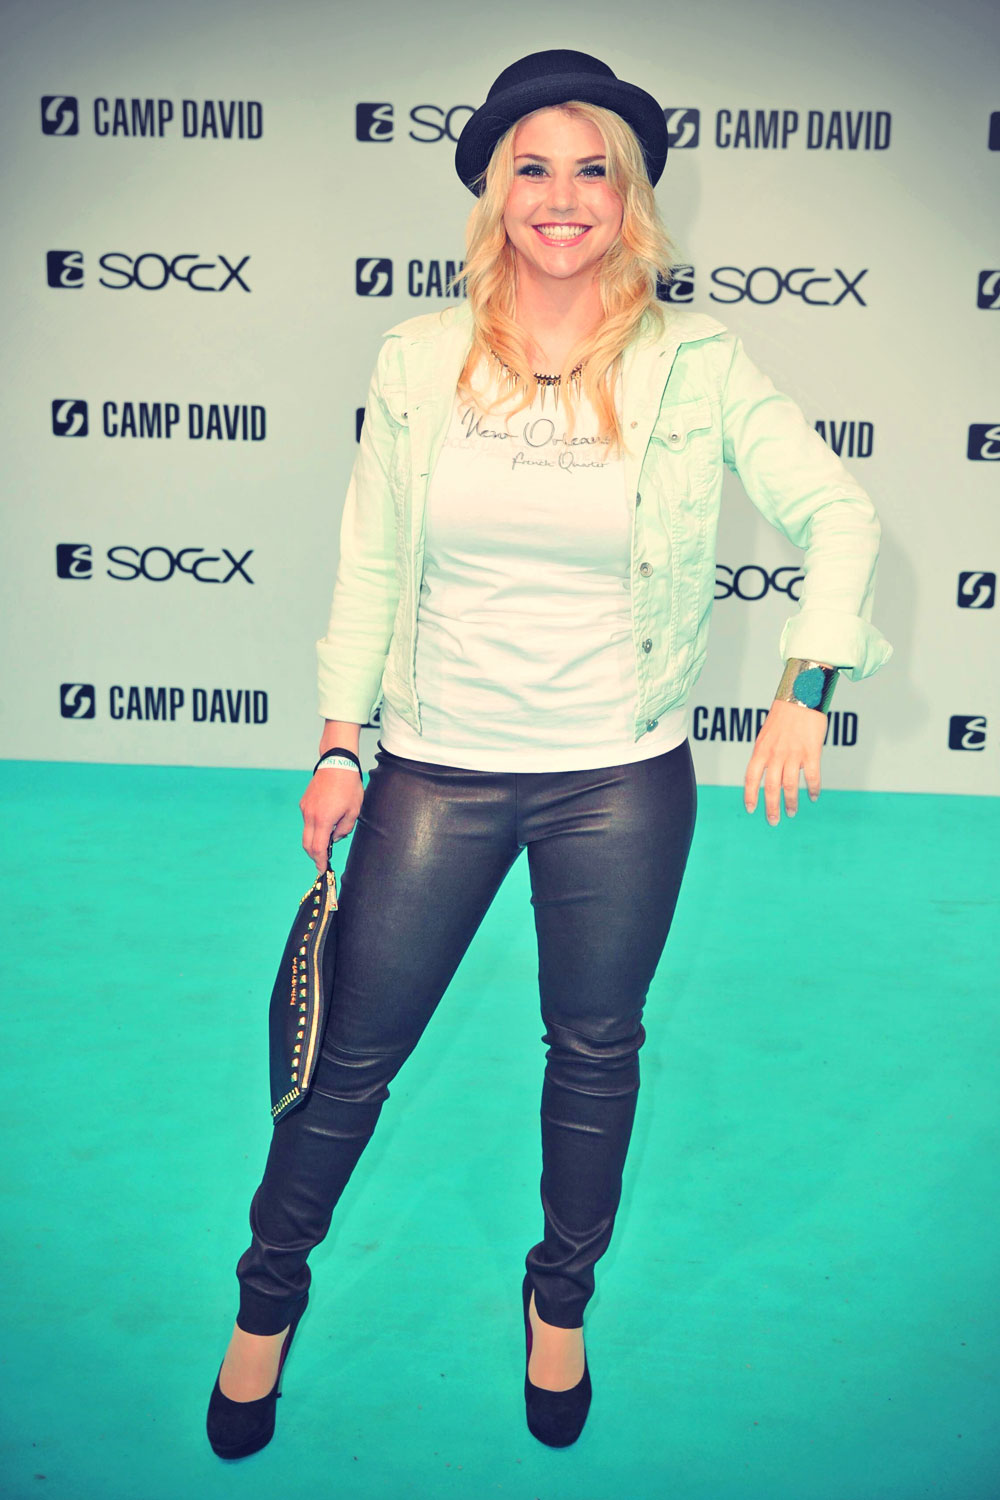 ... Beatrice Egli attends the Camp David And Soccx Fashion Night 2013